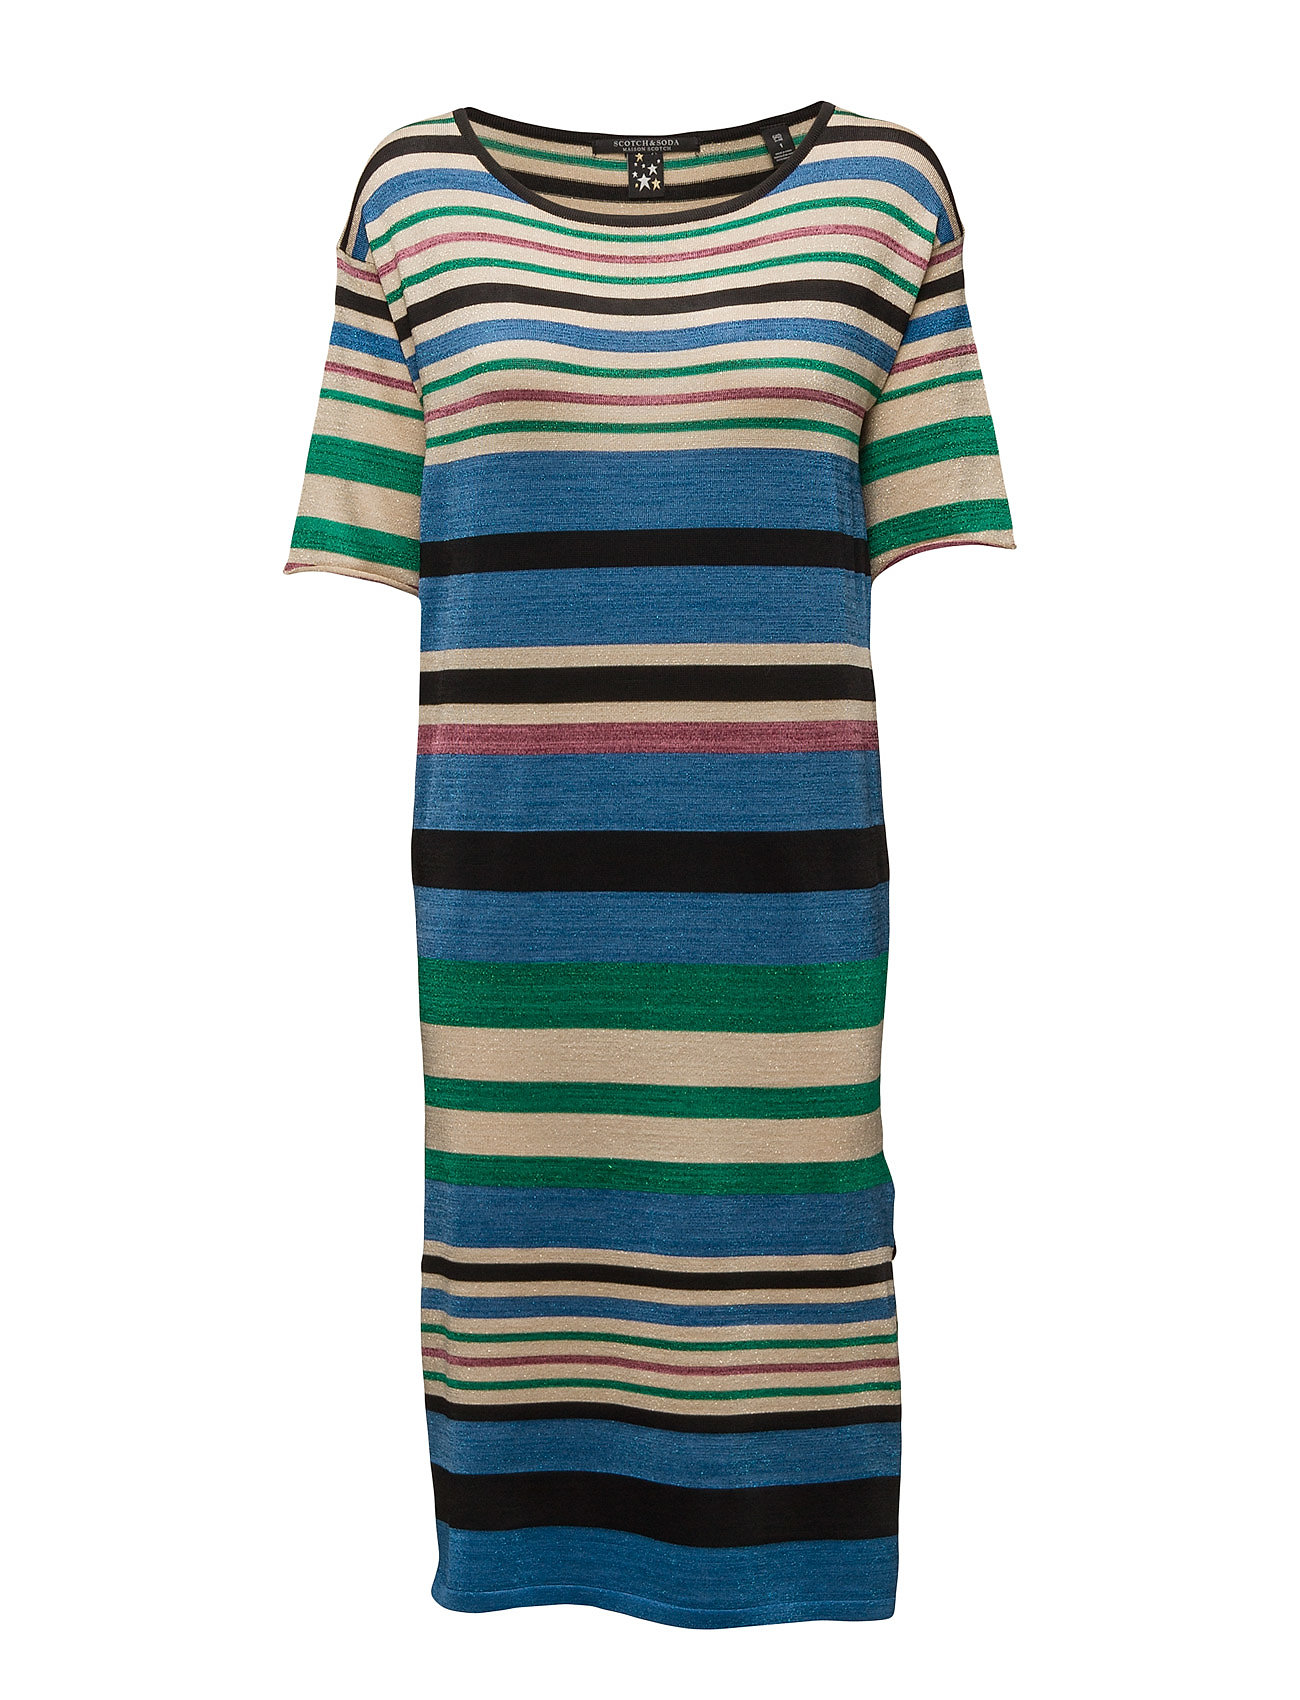 Midi Length Knit Dress In Bold Lurex Stripe Scotch & Soda Knælange & mellemlange til Damer i Combo A